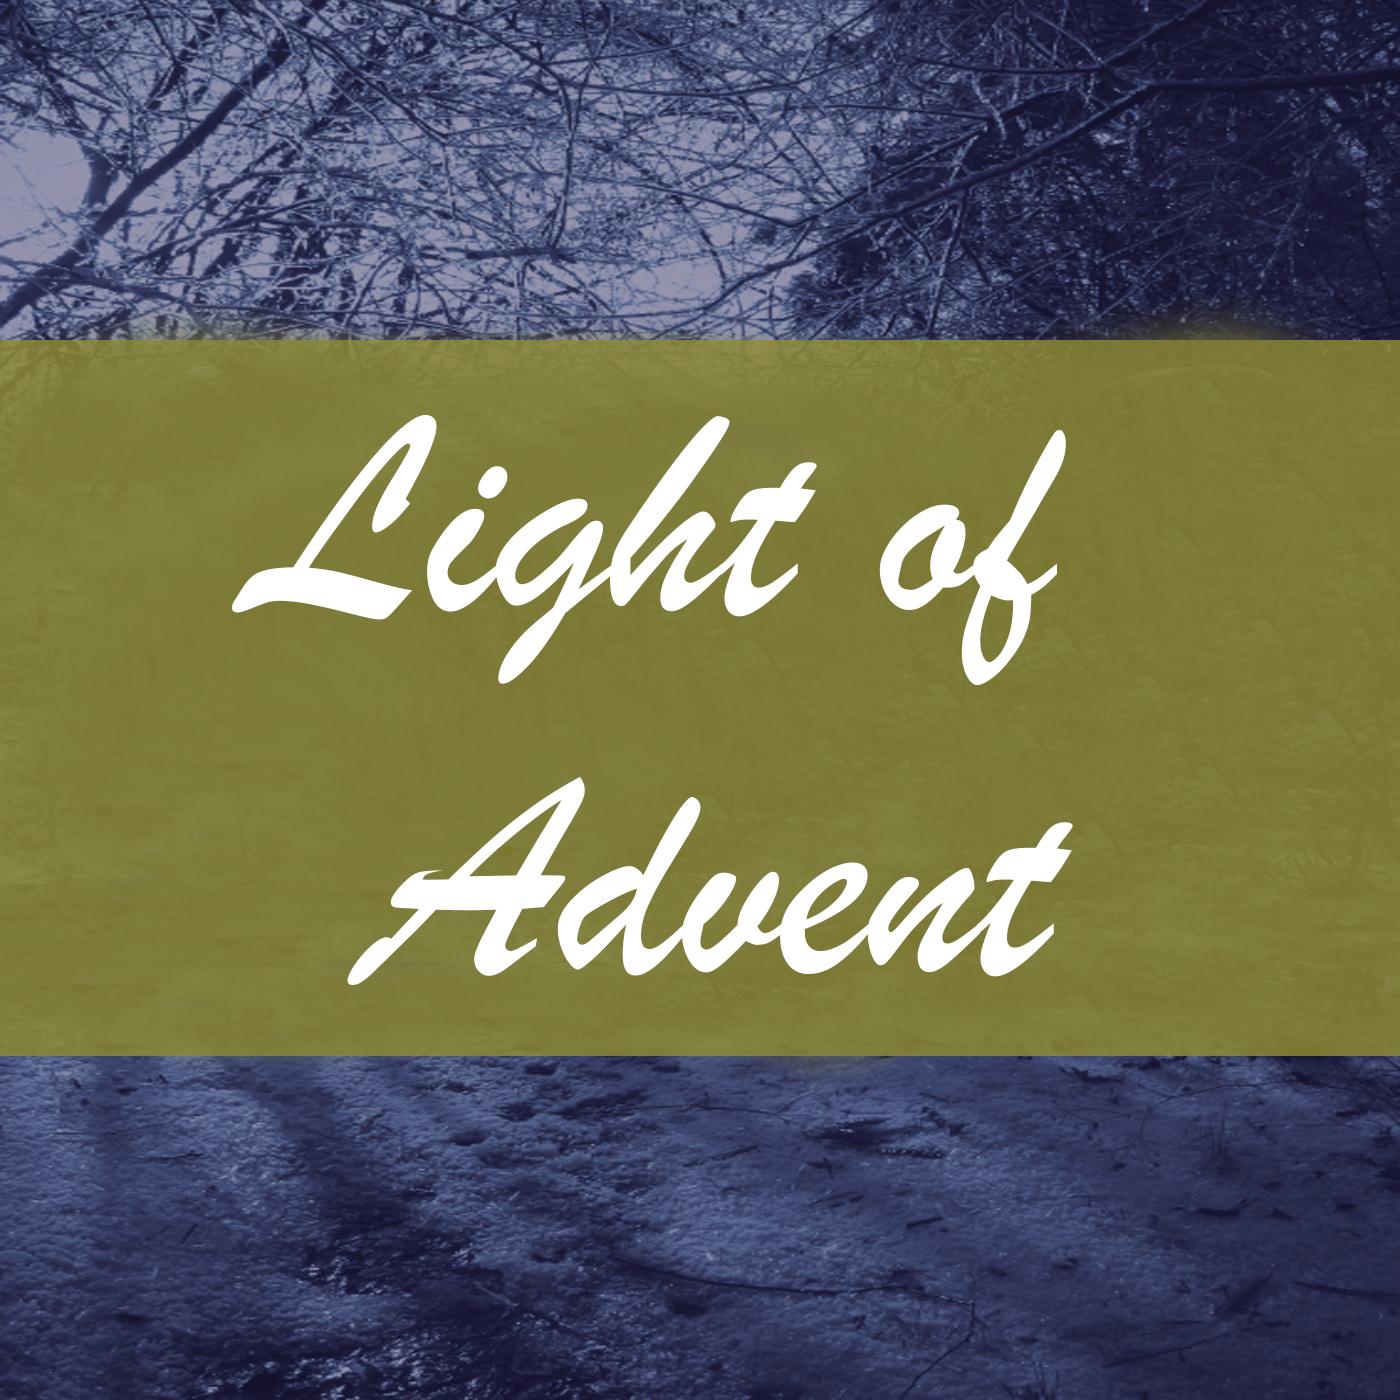 Light of Advent